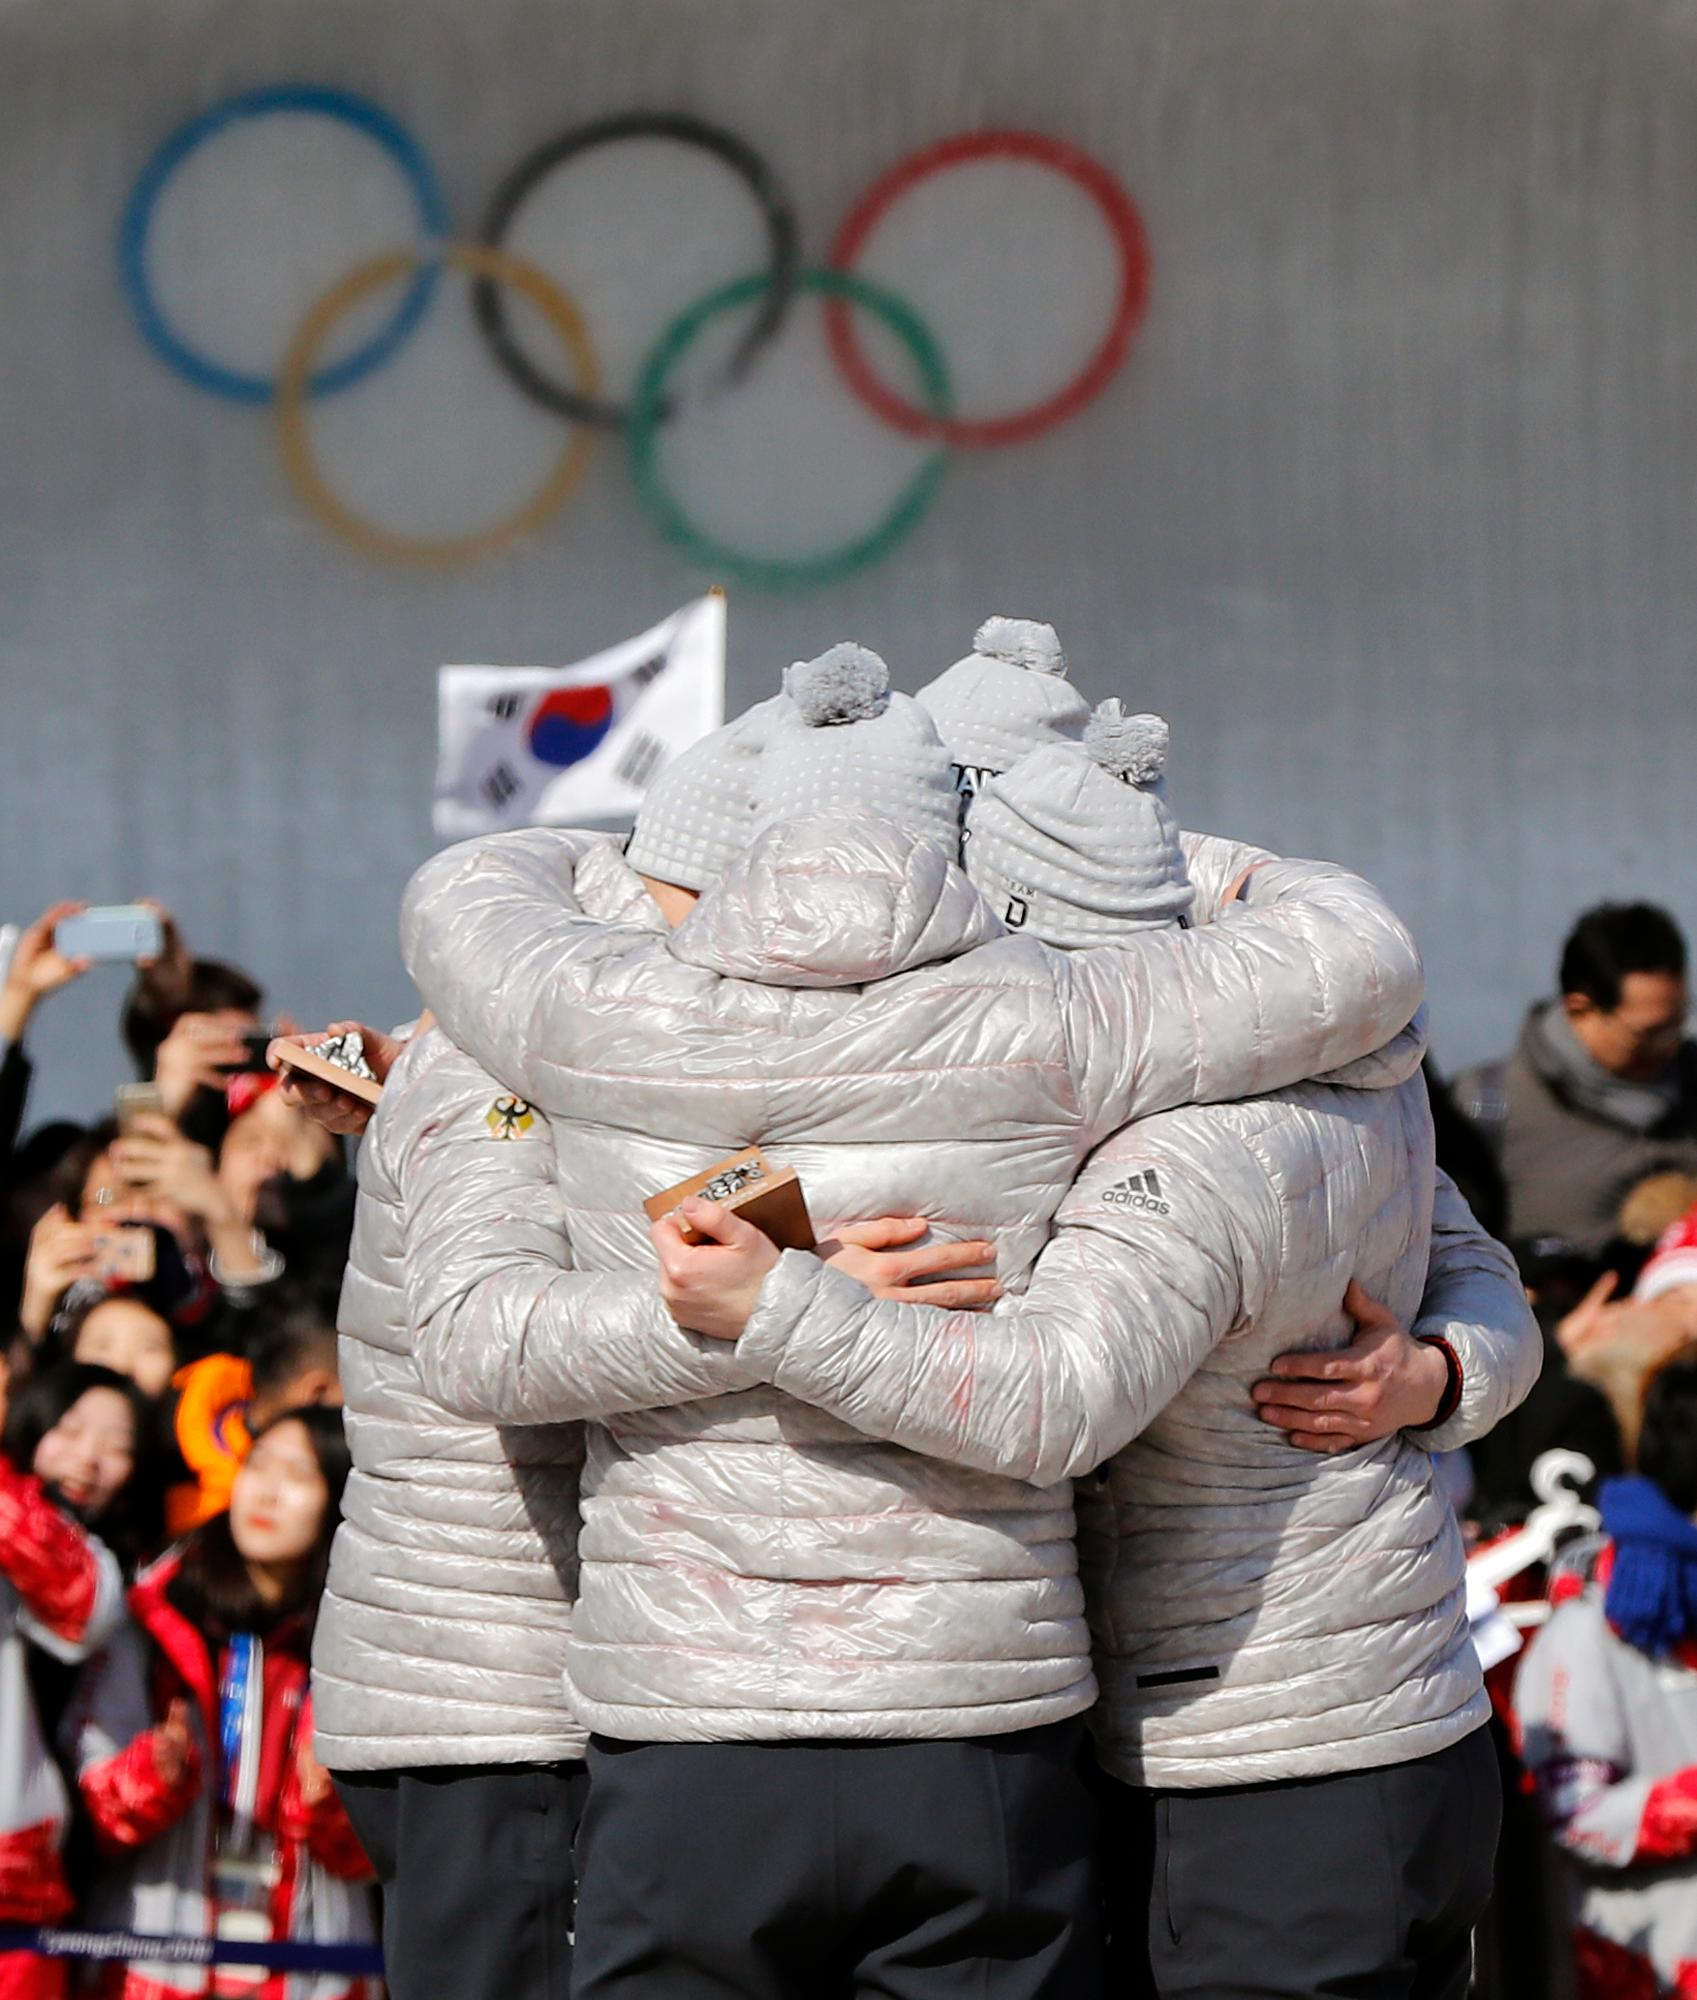 Driver Francesco Friedrich, Candy Bauer, Martin Grothkopp and Thorsten Margis of Germany celebrate after receiving the gold medal during the four-man bobsled competition final at the 2018 Winter Olympics in Pyeongchang, South Korea, Sunday, Feb. 25, 2018. (AP Photo/Andy Wong)